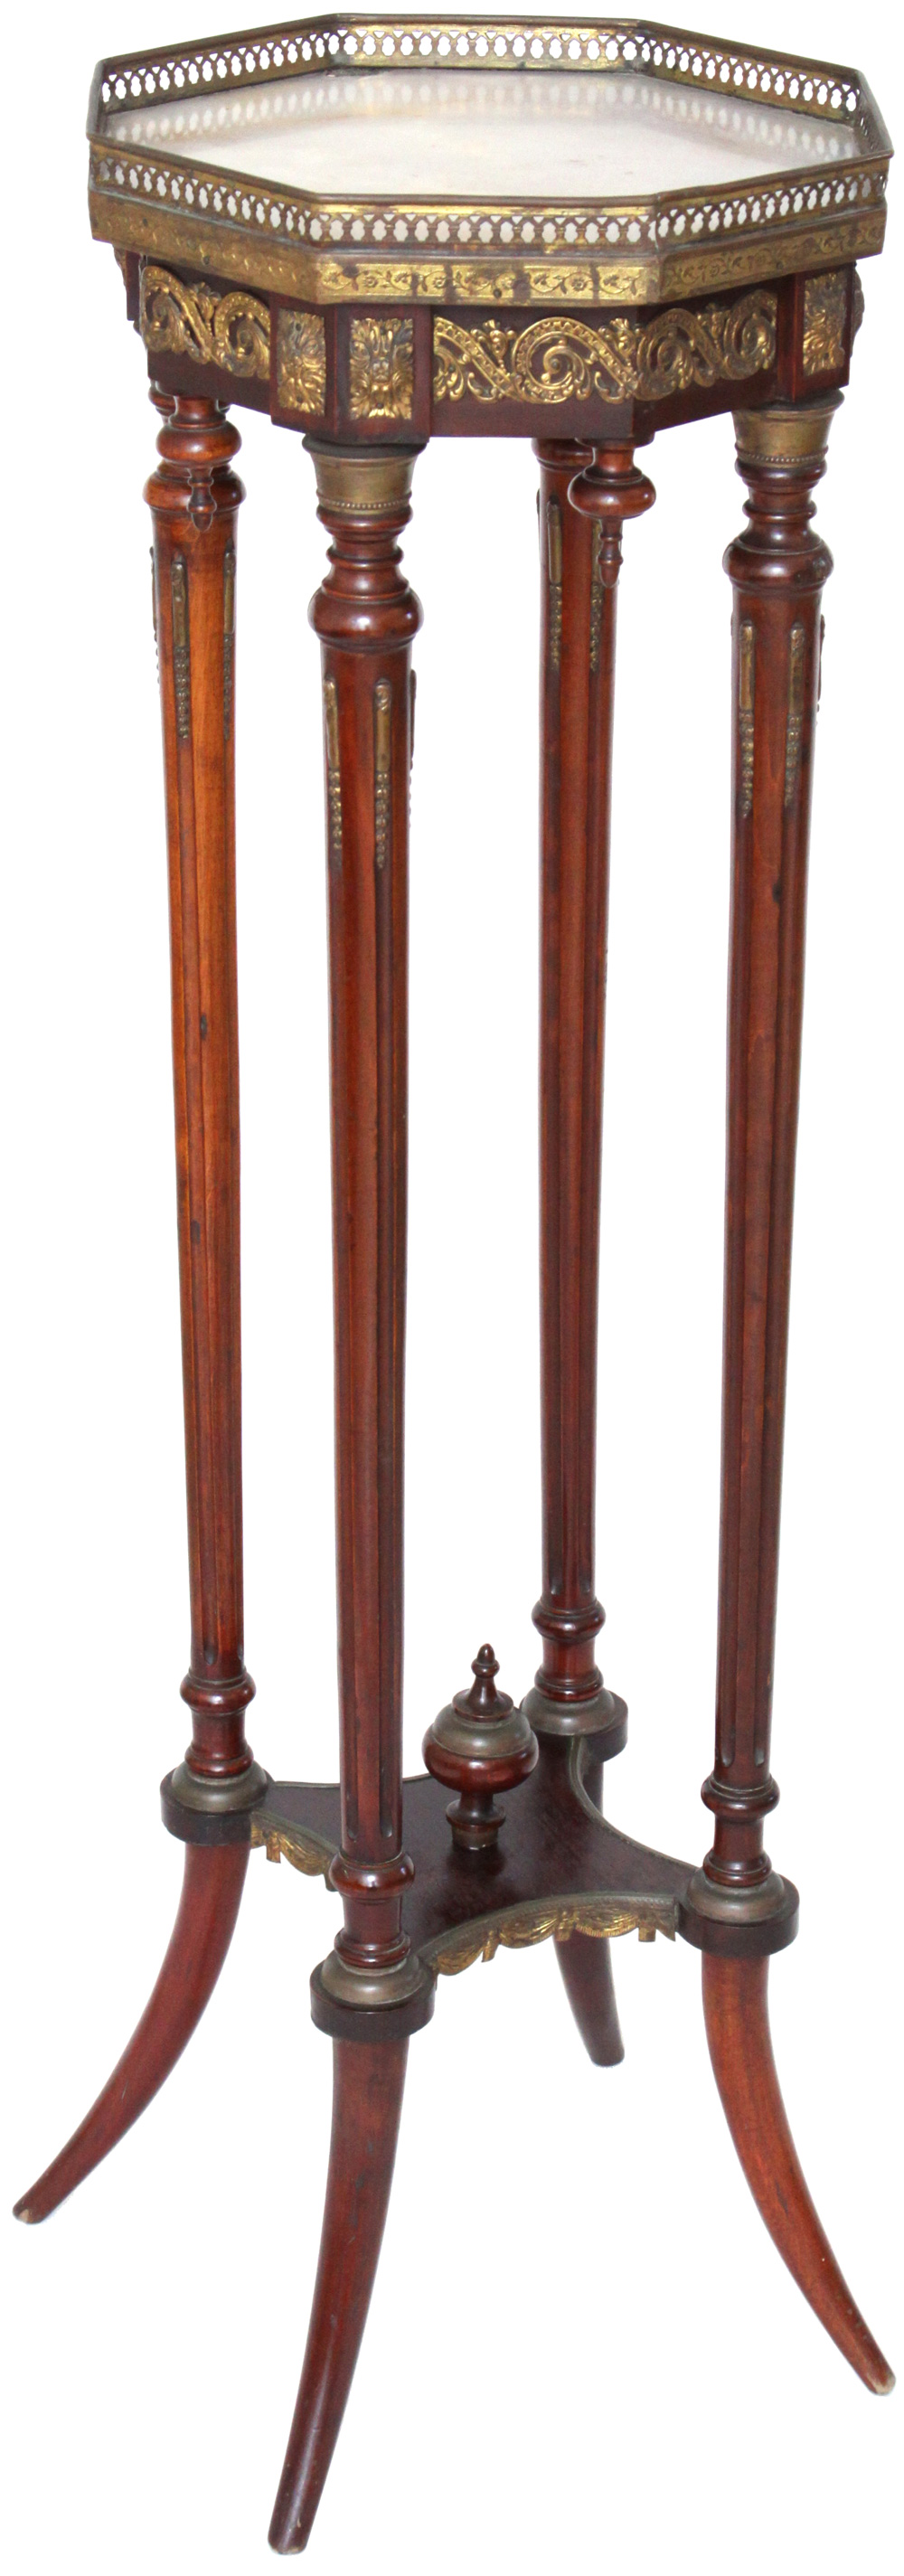 Antique French Plant Stands ריהוט